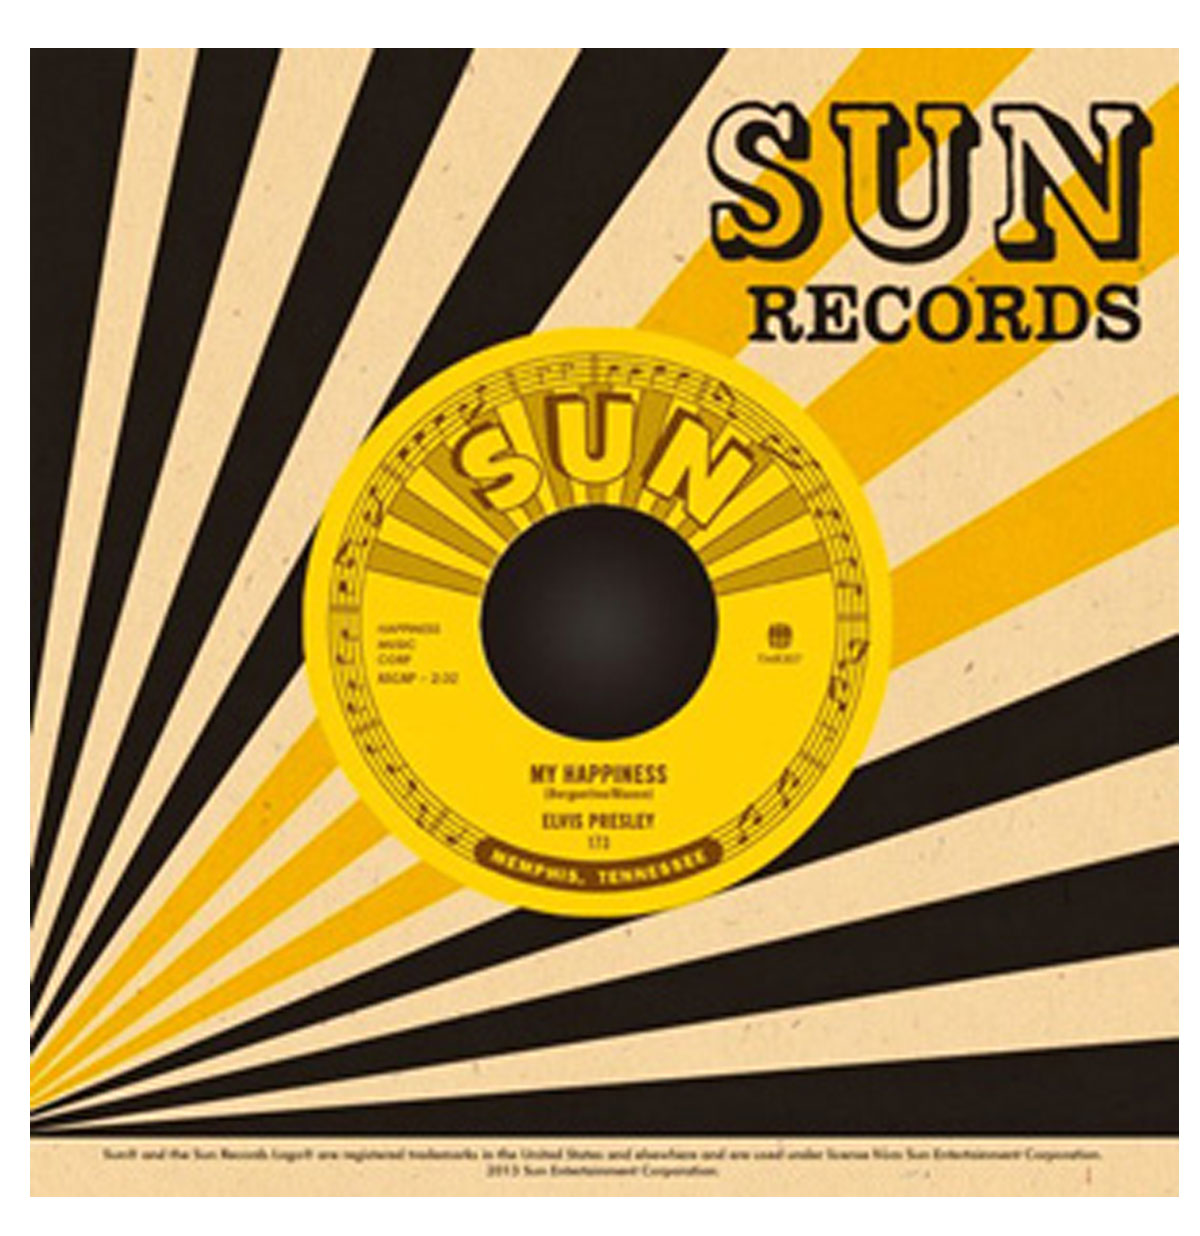 Elvis Presley - My Happiness / That's When Your Heartaches Begin 45 RPM Sun Records